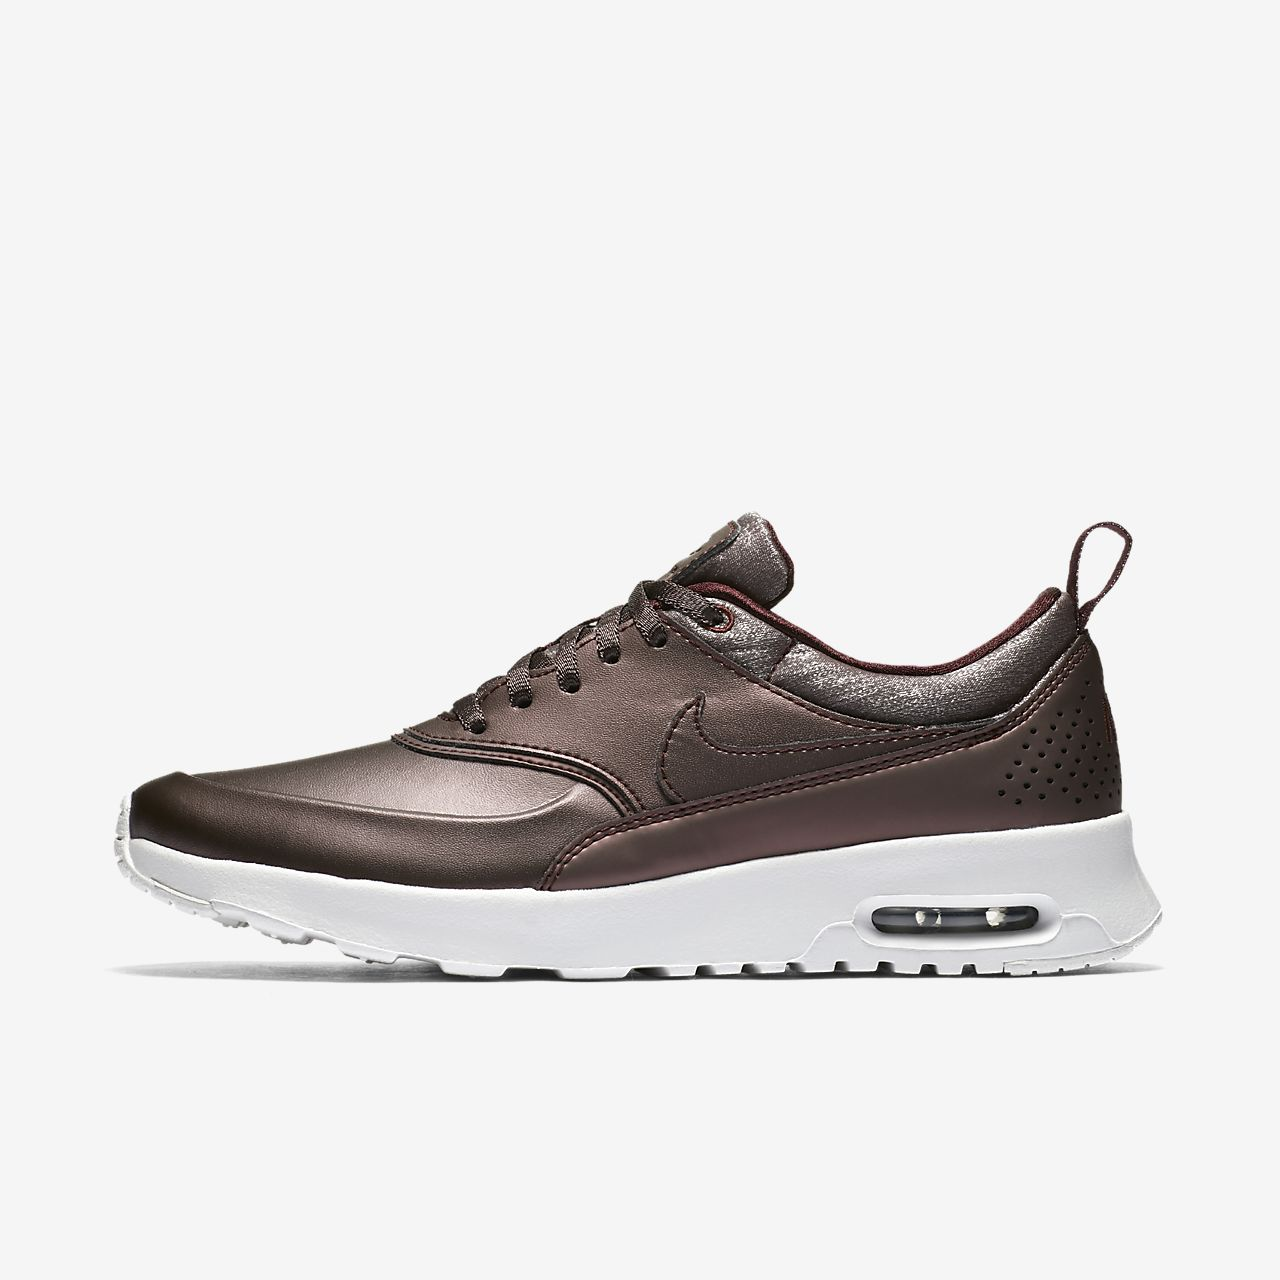 Air Max Thea Lux - Chaussures - Bas-tops Et Baskets Nike BYxUeM7